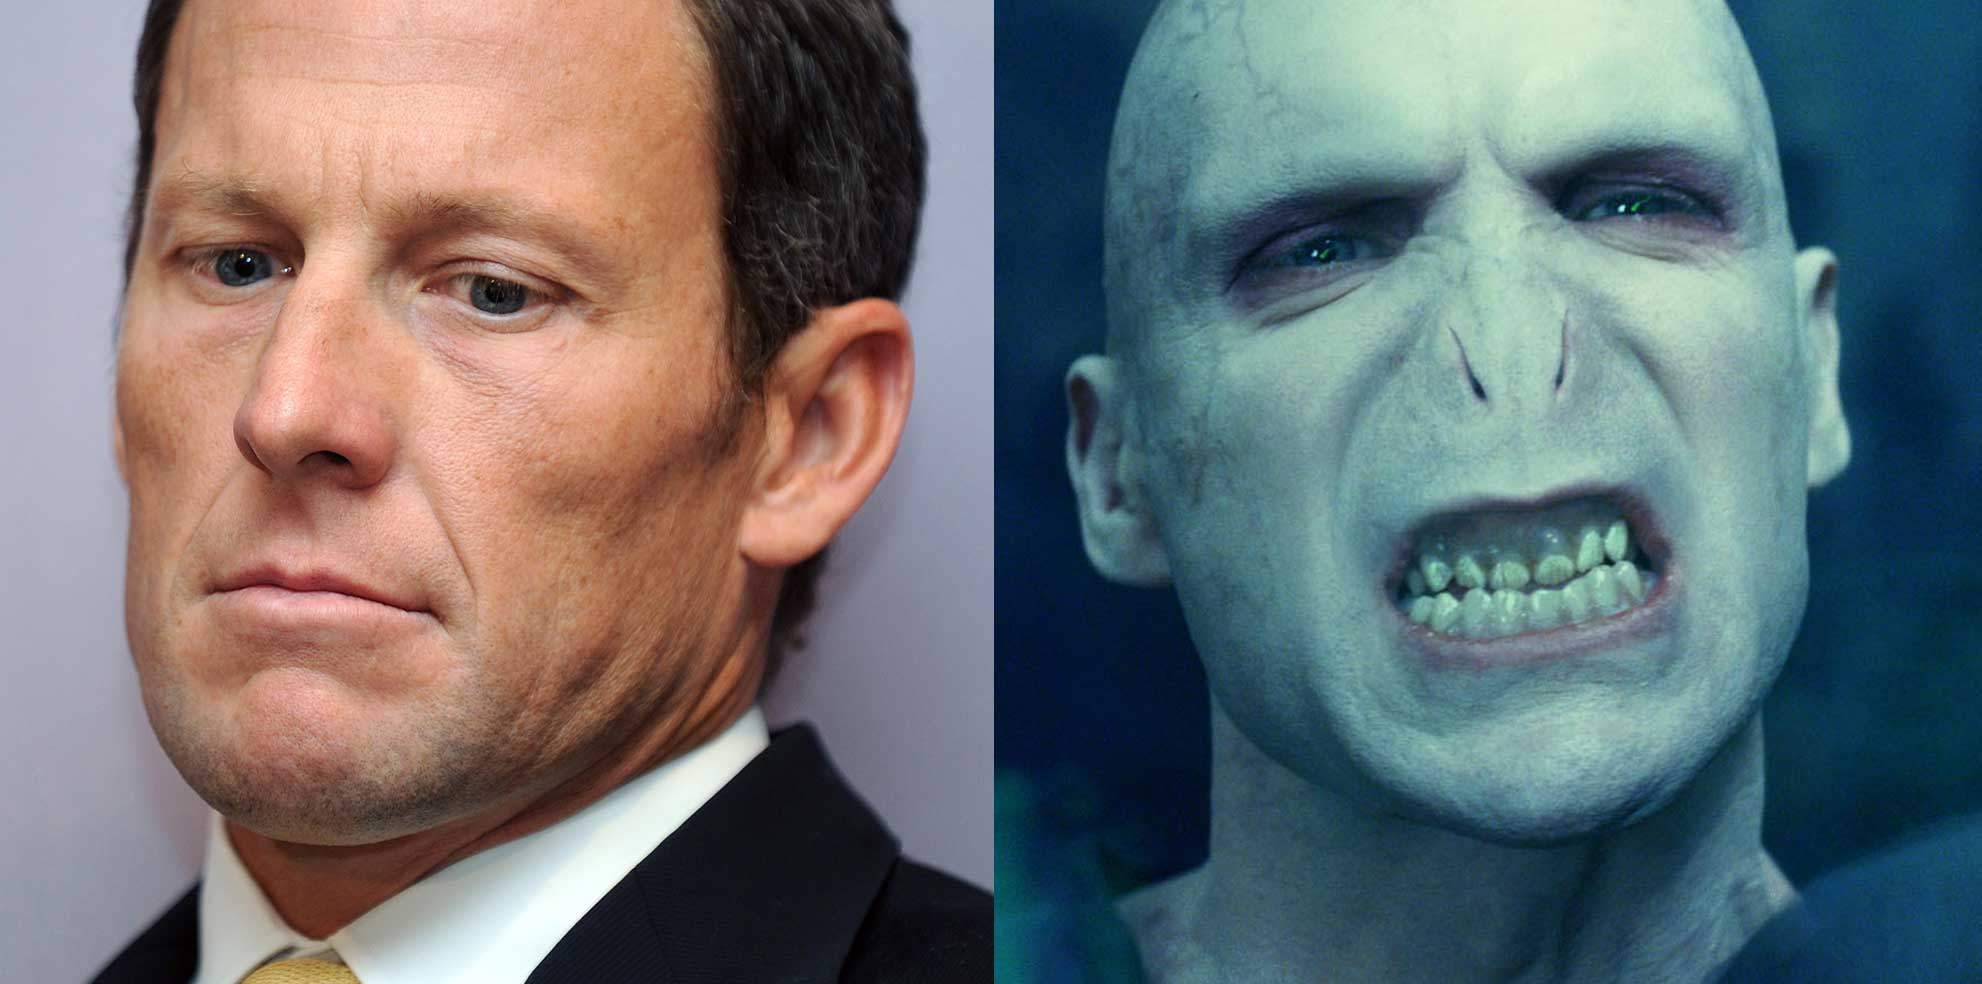 Lance Armstrong and Harry Potter character Lord Voldemort